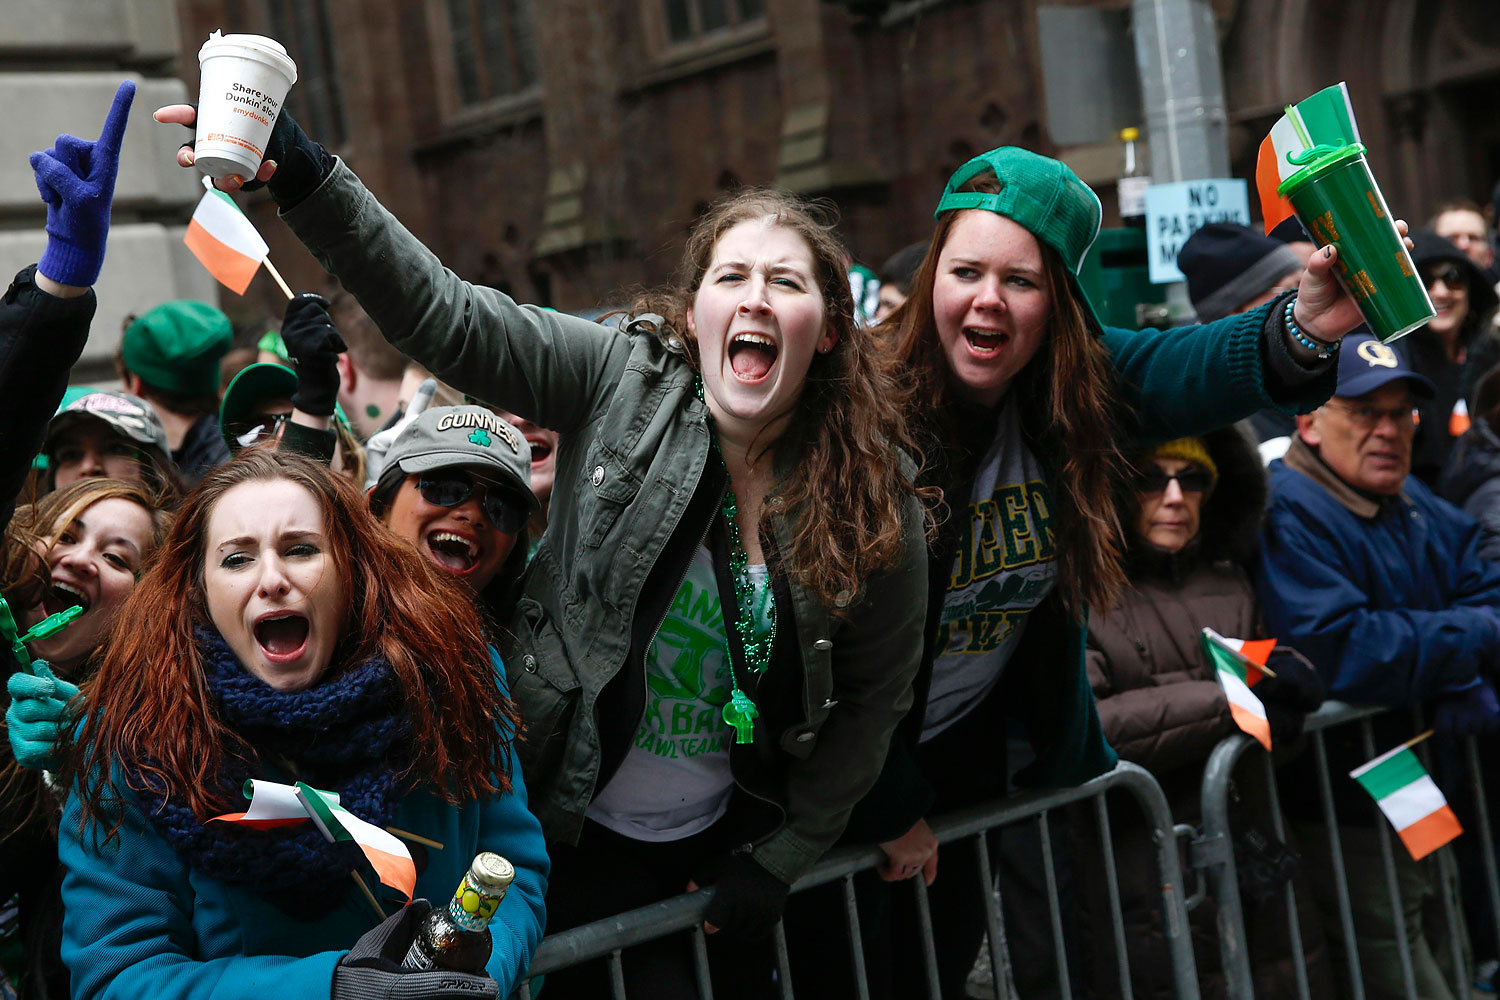 People cheer along 5th avenue during the St. Patrick's Day parade in New York, March 17, 2014.